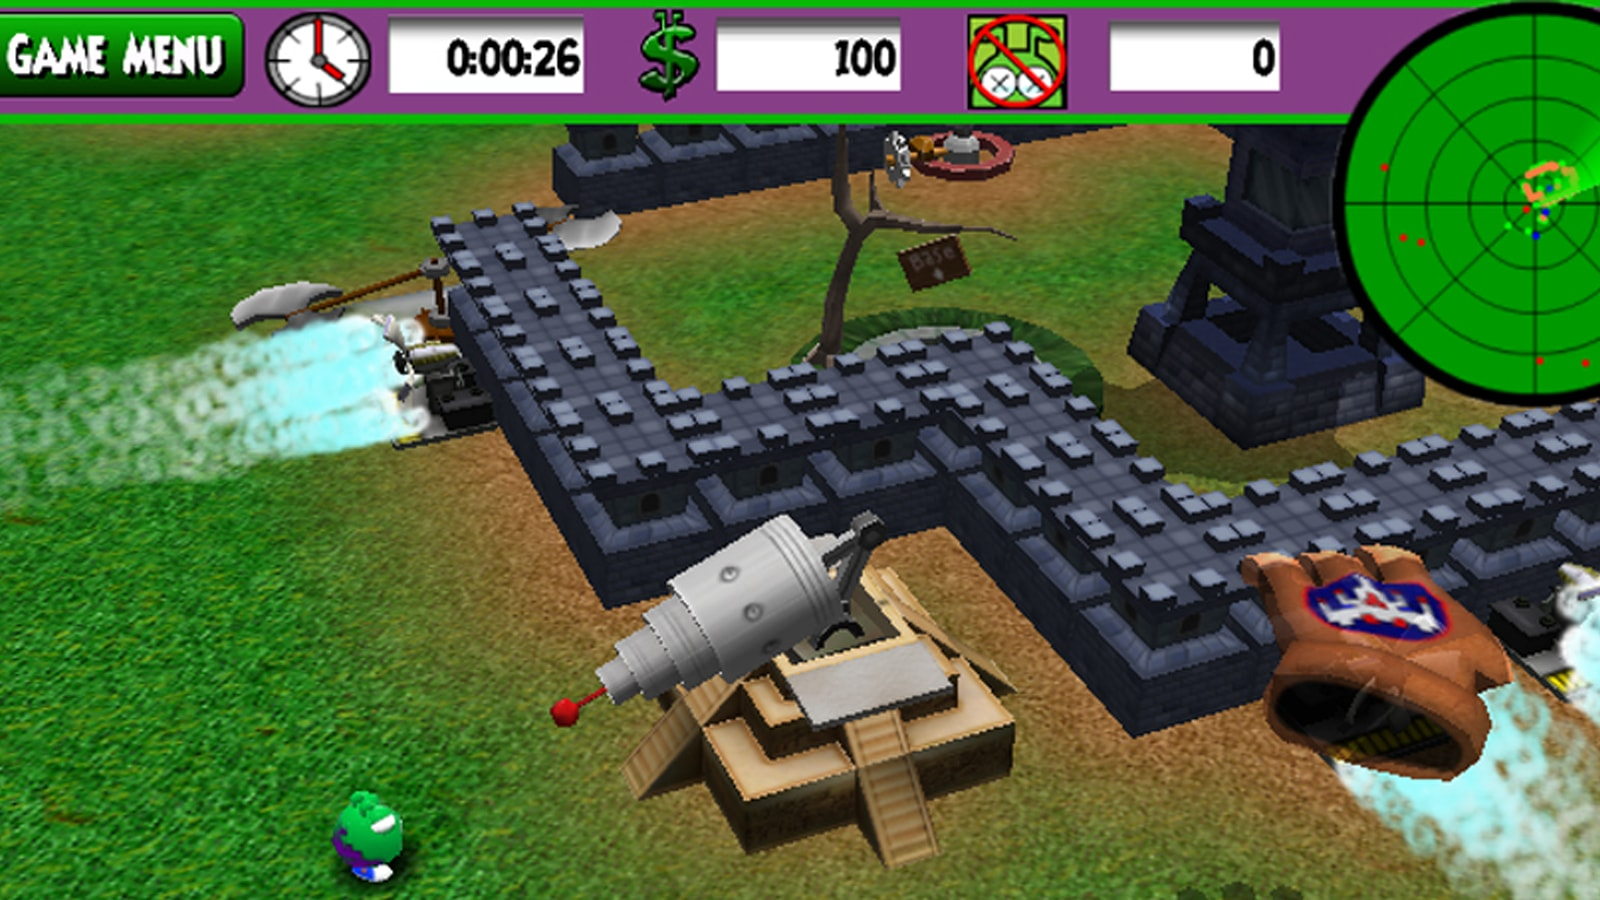 A ray gun atop a ziggurat points at a green invader, a spinning axe device in the background.